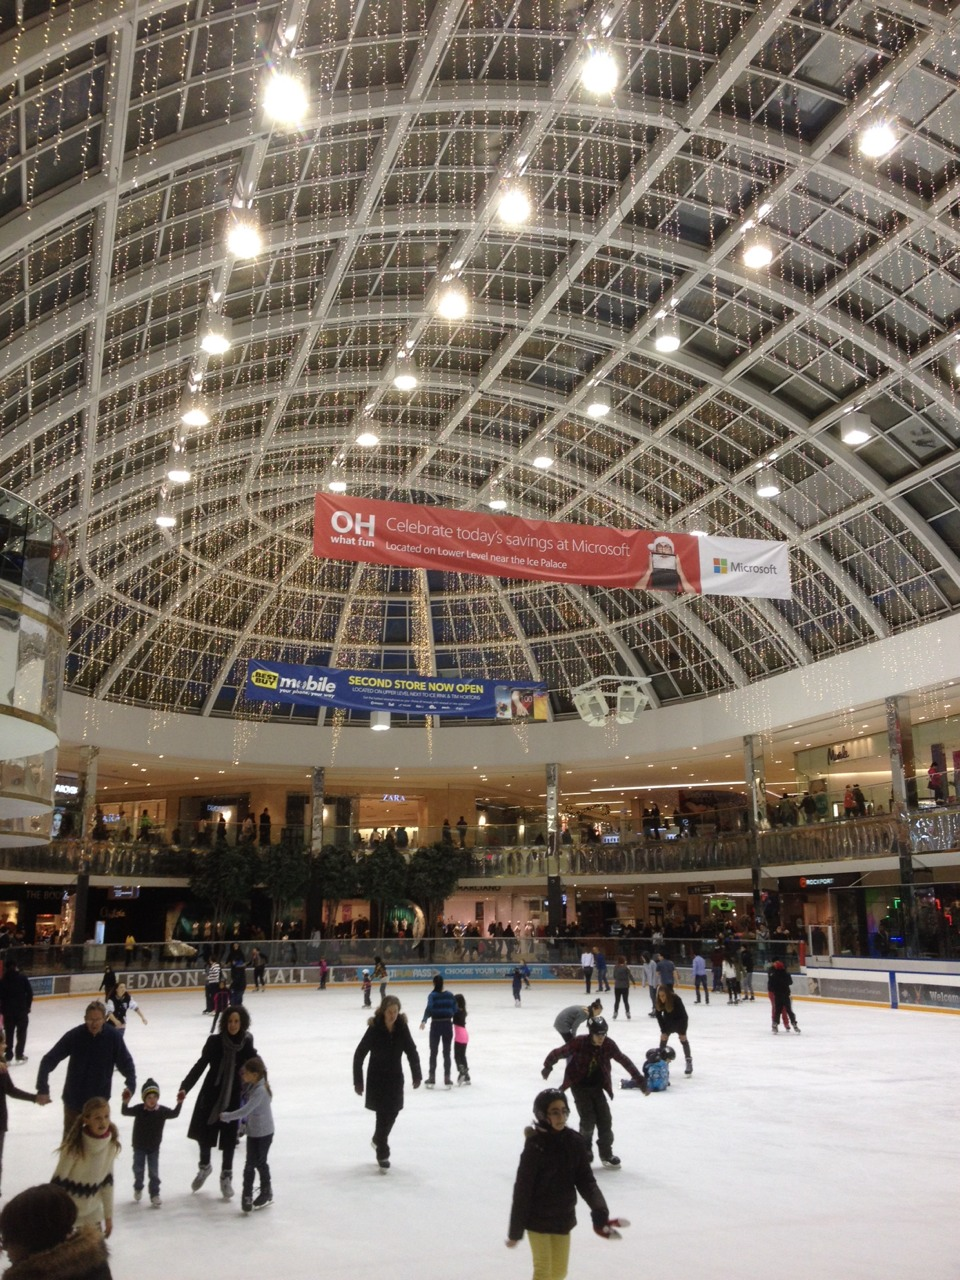 I stand corrected. Outlandish and fantastic shopping malls are not just the province of Americans, Alberta is right up there. I wish we could have spent more time at the West Edmonton Mall where Oscar delighted in every new thing. Next time!